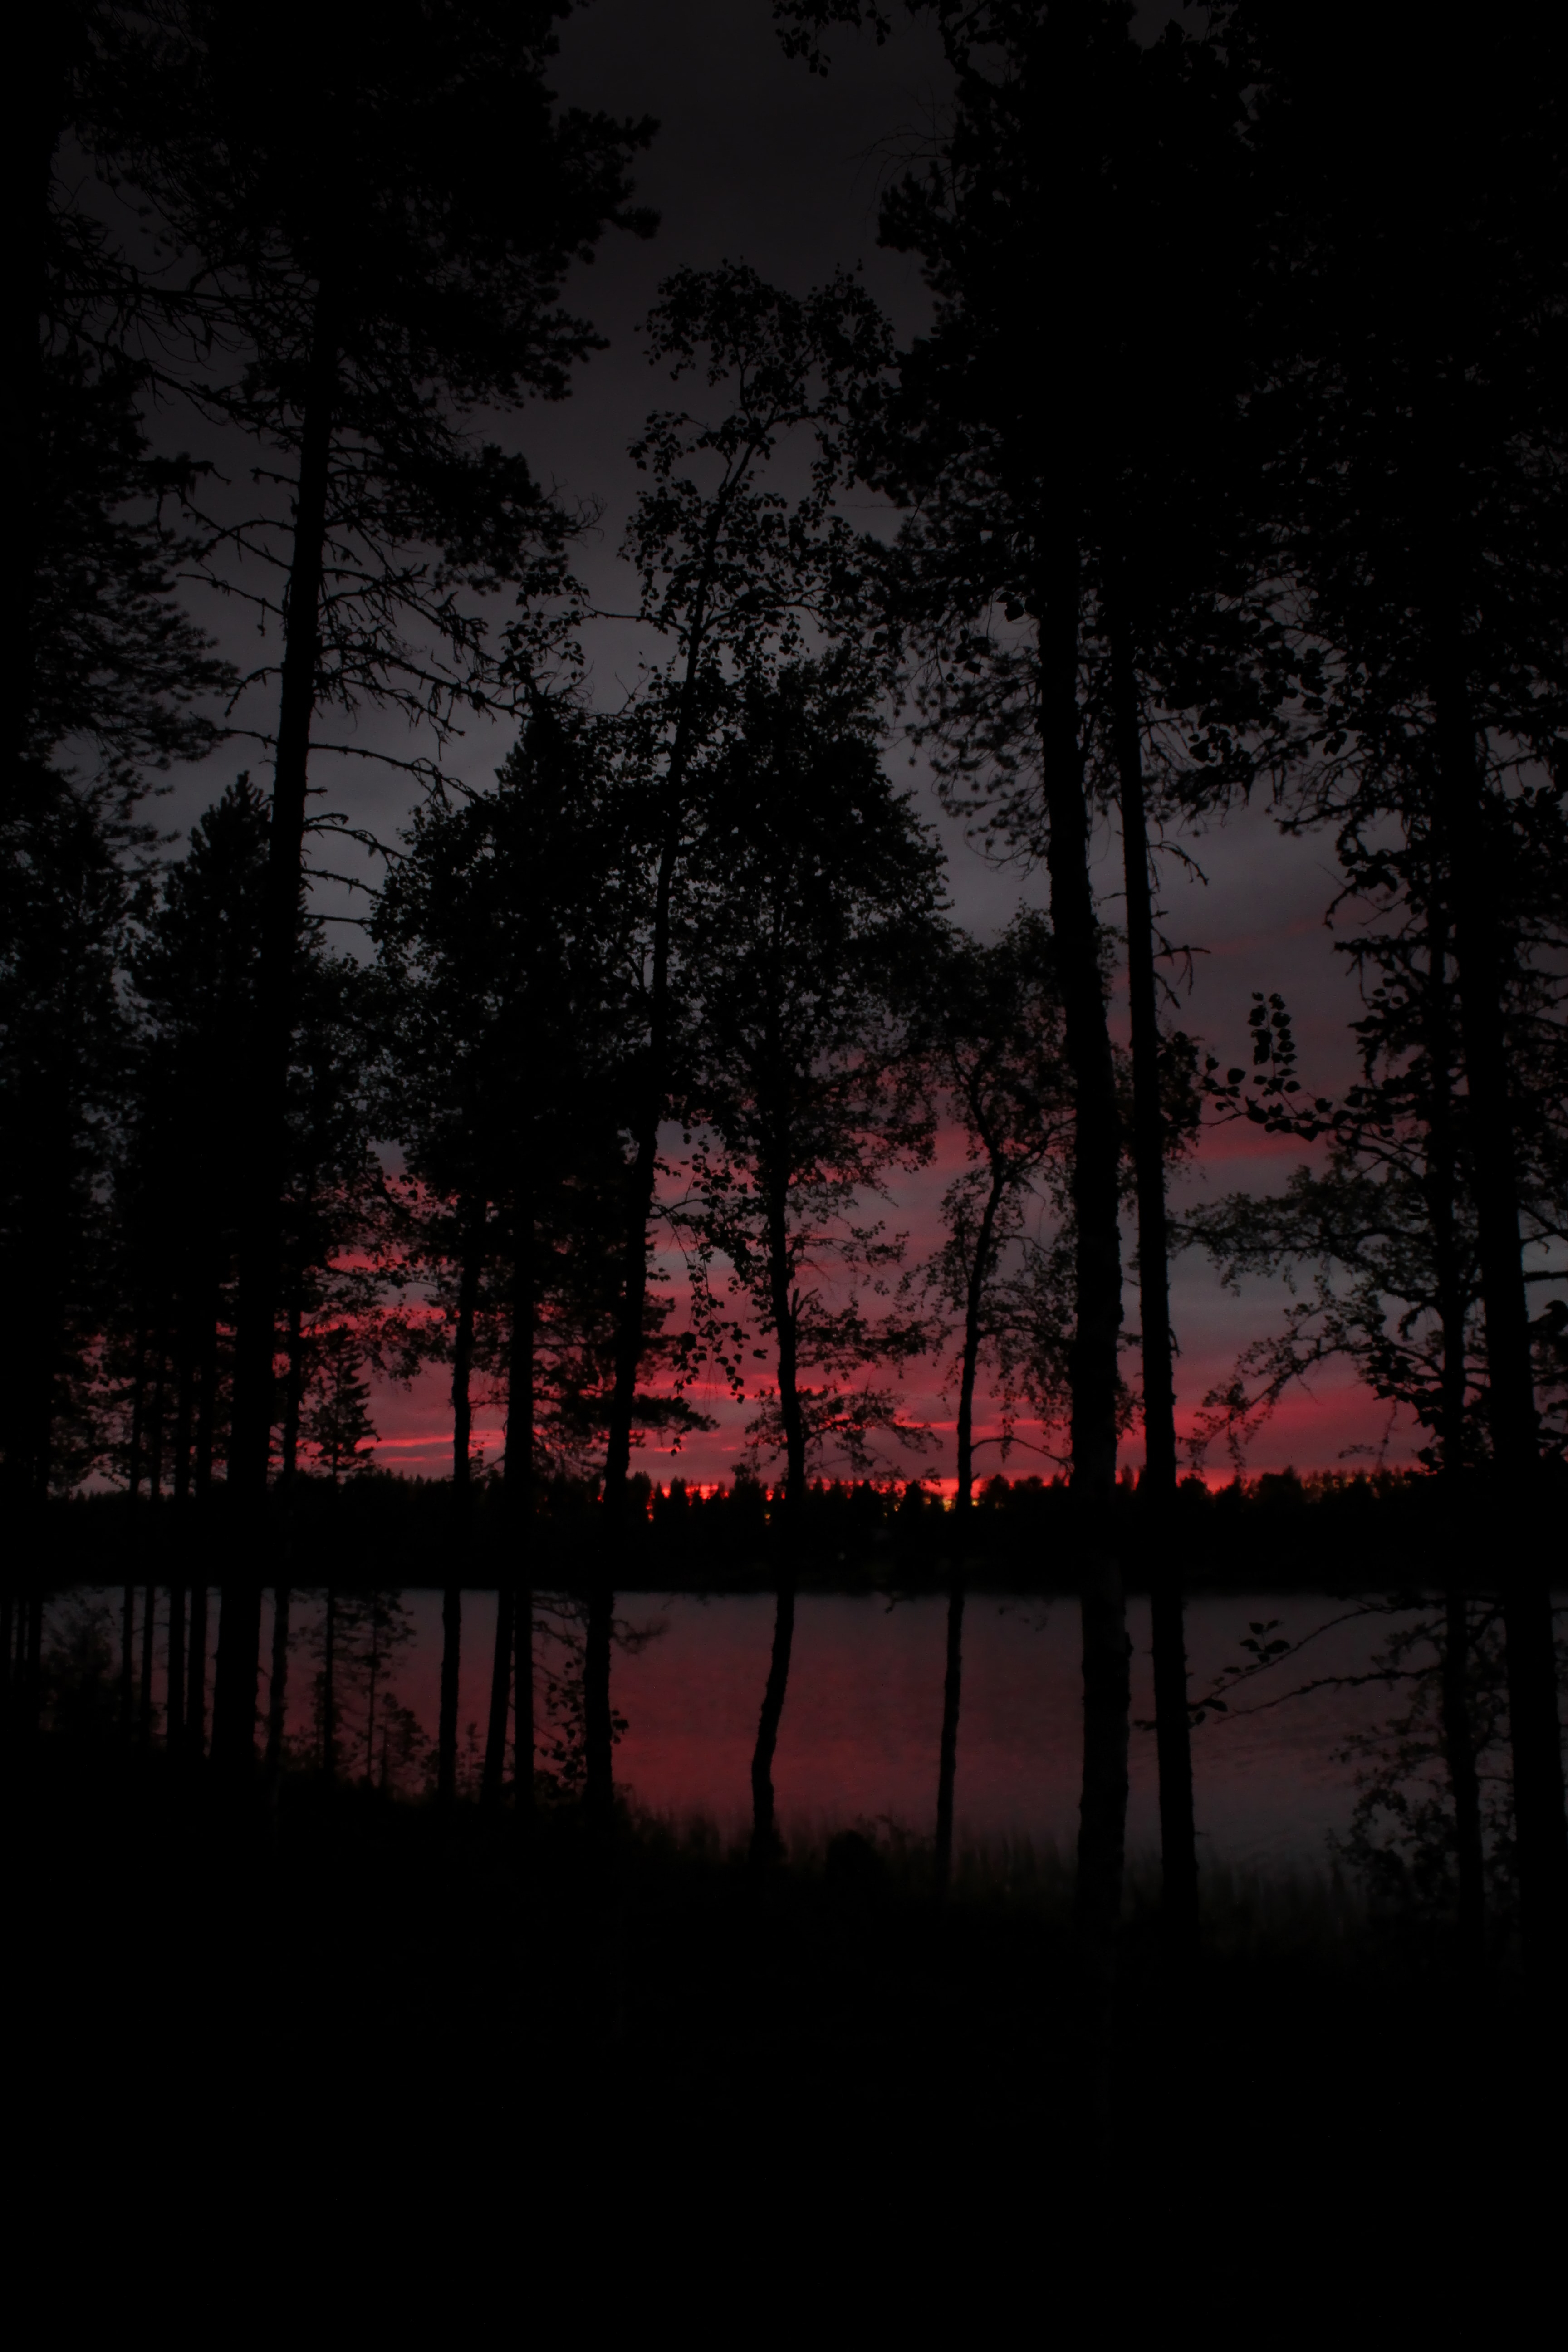 116104 download wallpaper Dark, Trees, Lake, Dusk, Twilight screensavers and pictures for free